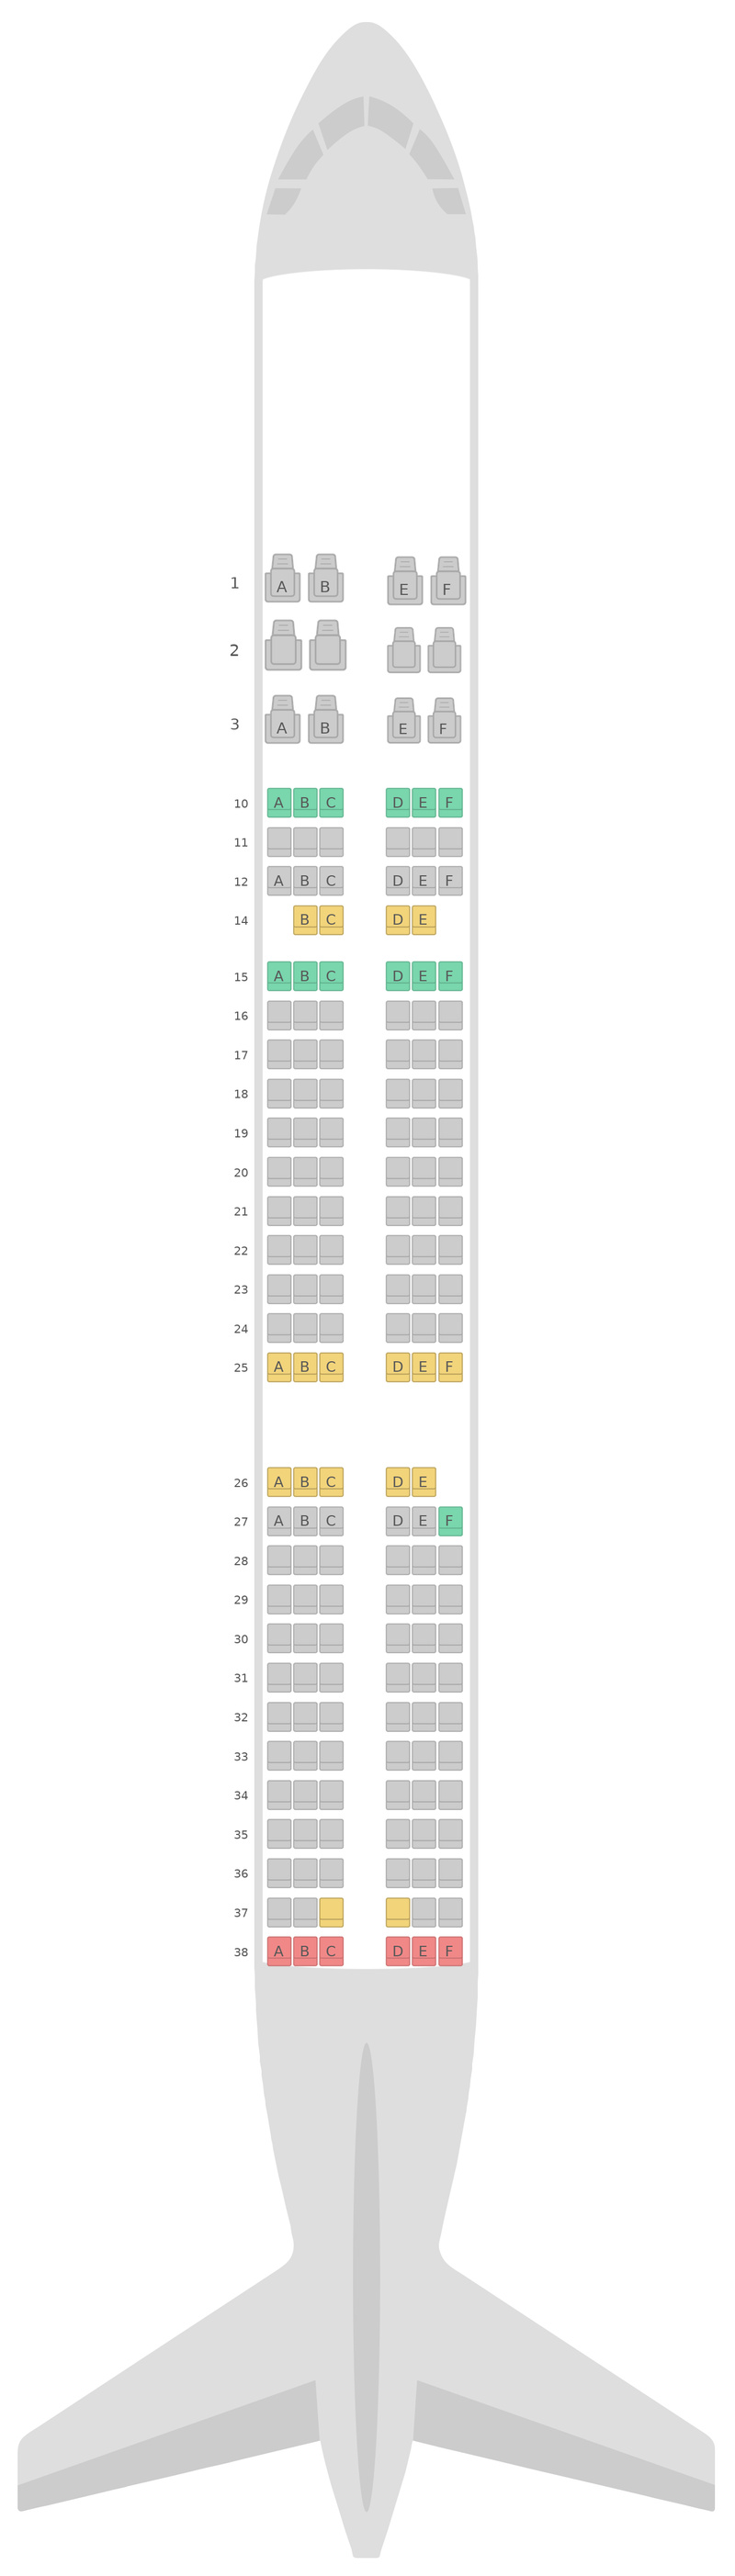 Seat Map Asiana Airlines Airbus A321 2 Class v2